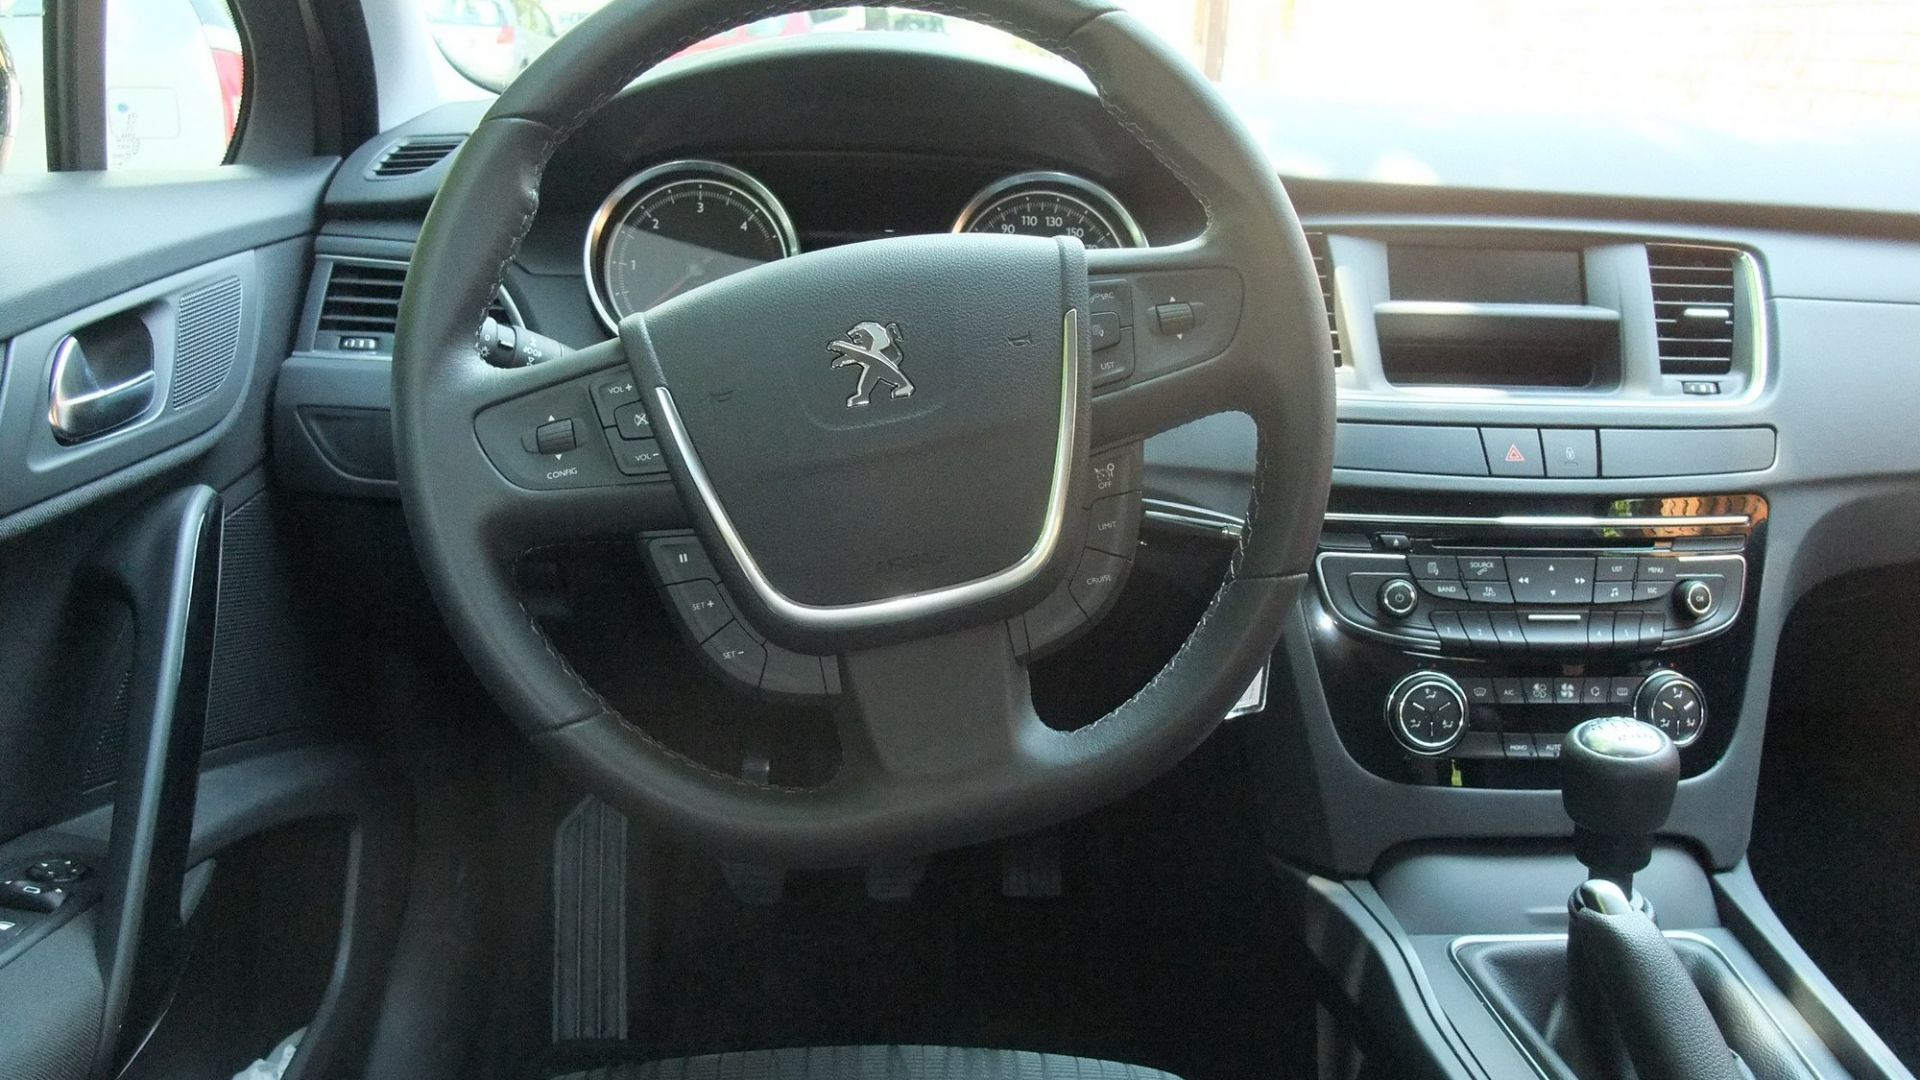 test drive peugeot 508 2 0 hdi 140 cv access motorbox. Black Bedroom Furniture Sets. Home Design Ideas